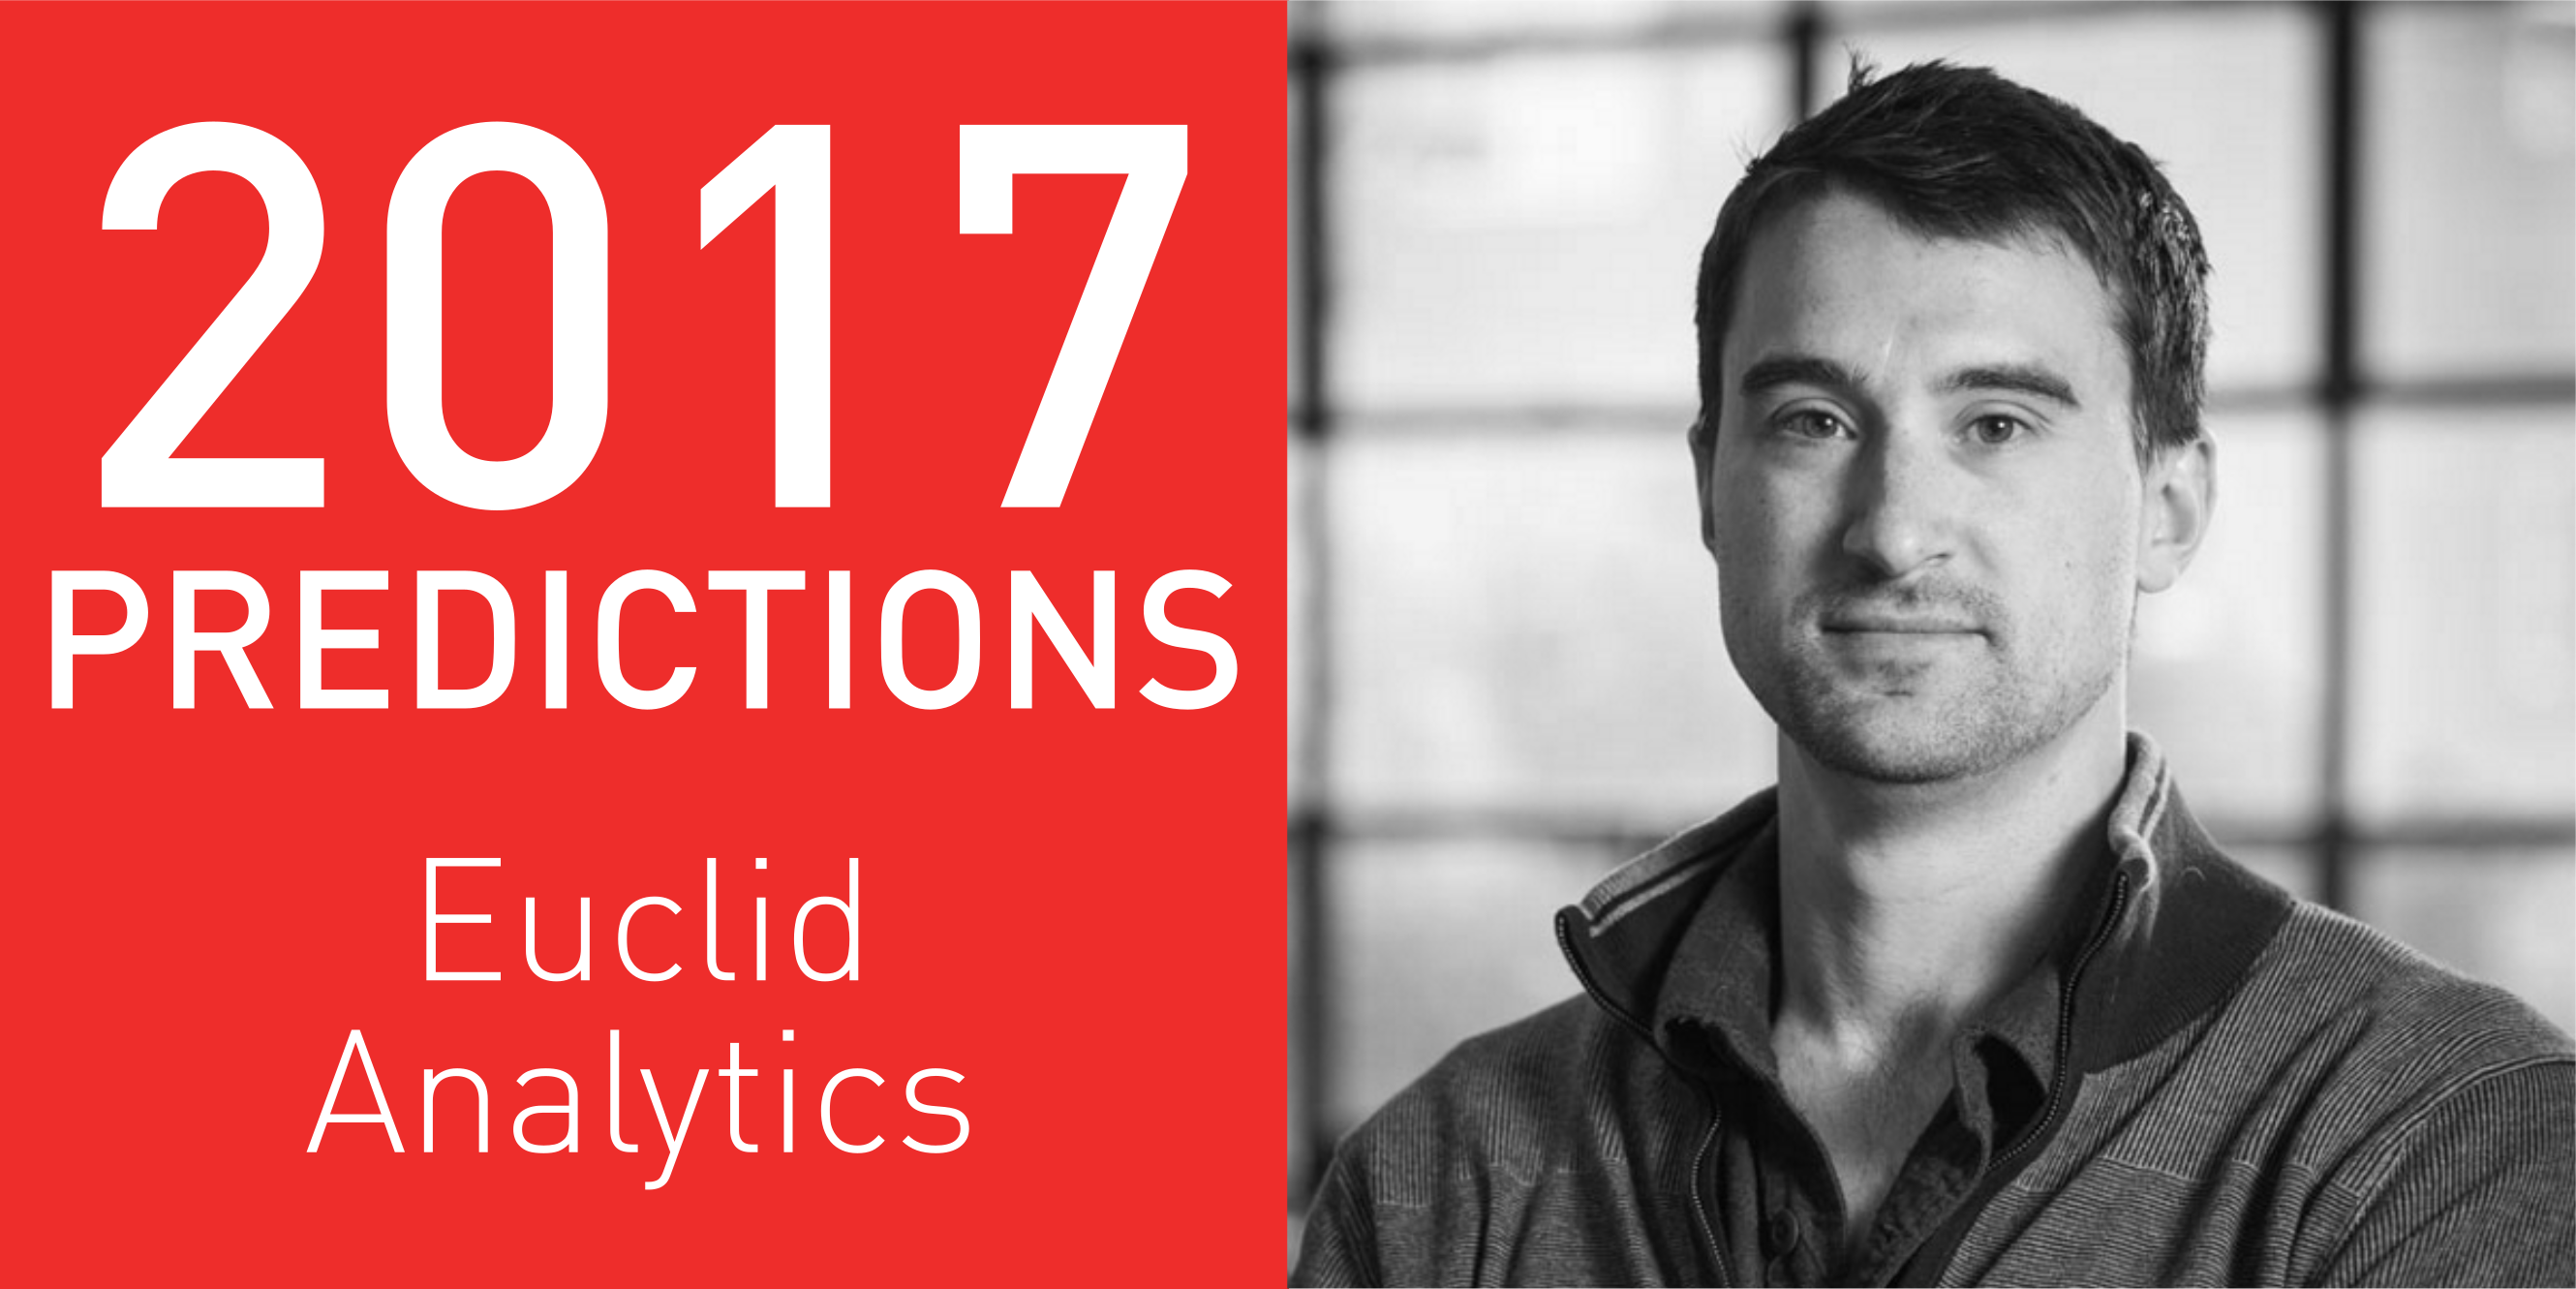 2017 Predictions: Euclid Analytics